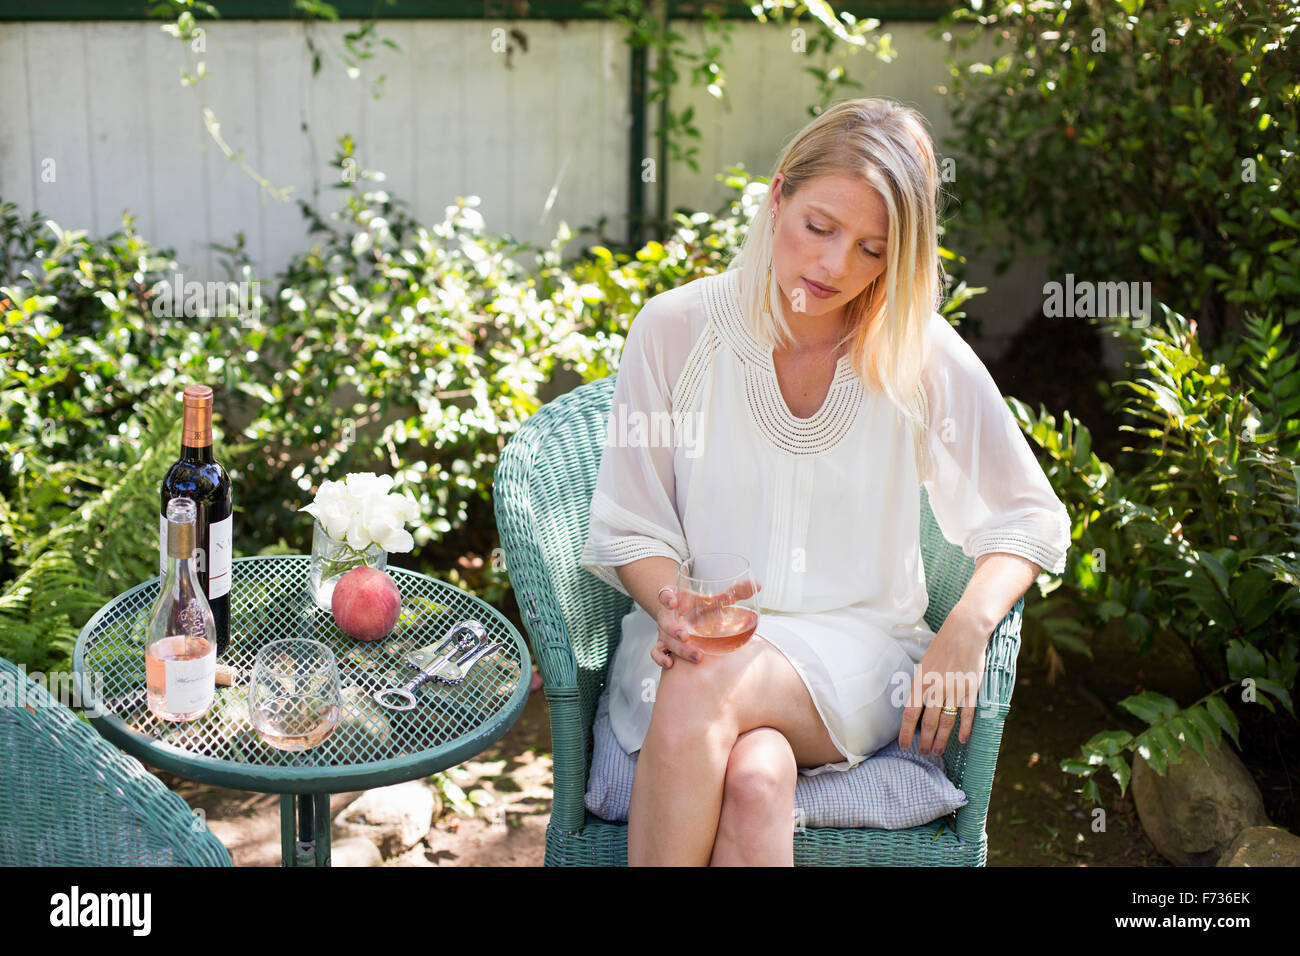 Blond woman sitting in a garden in summer, holding a wine glass. - Stock Image